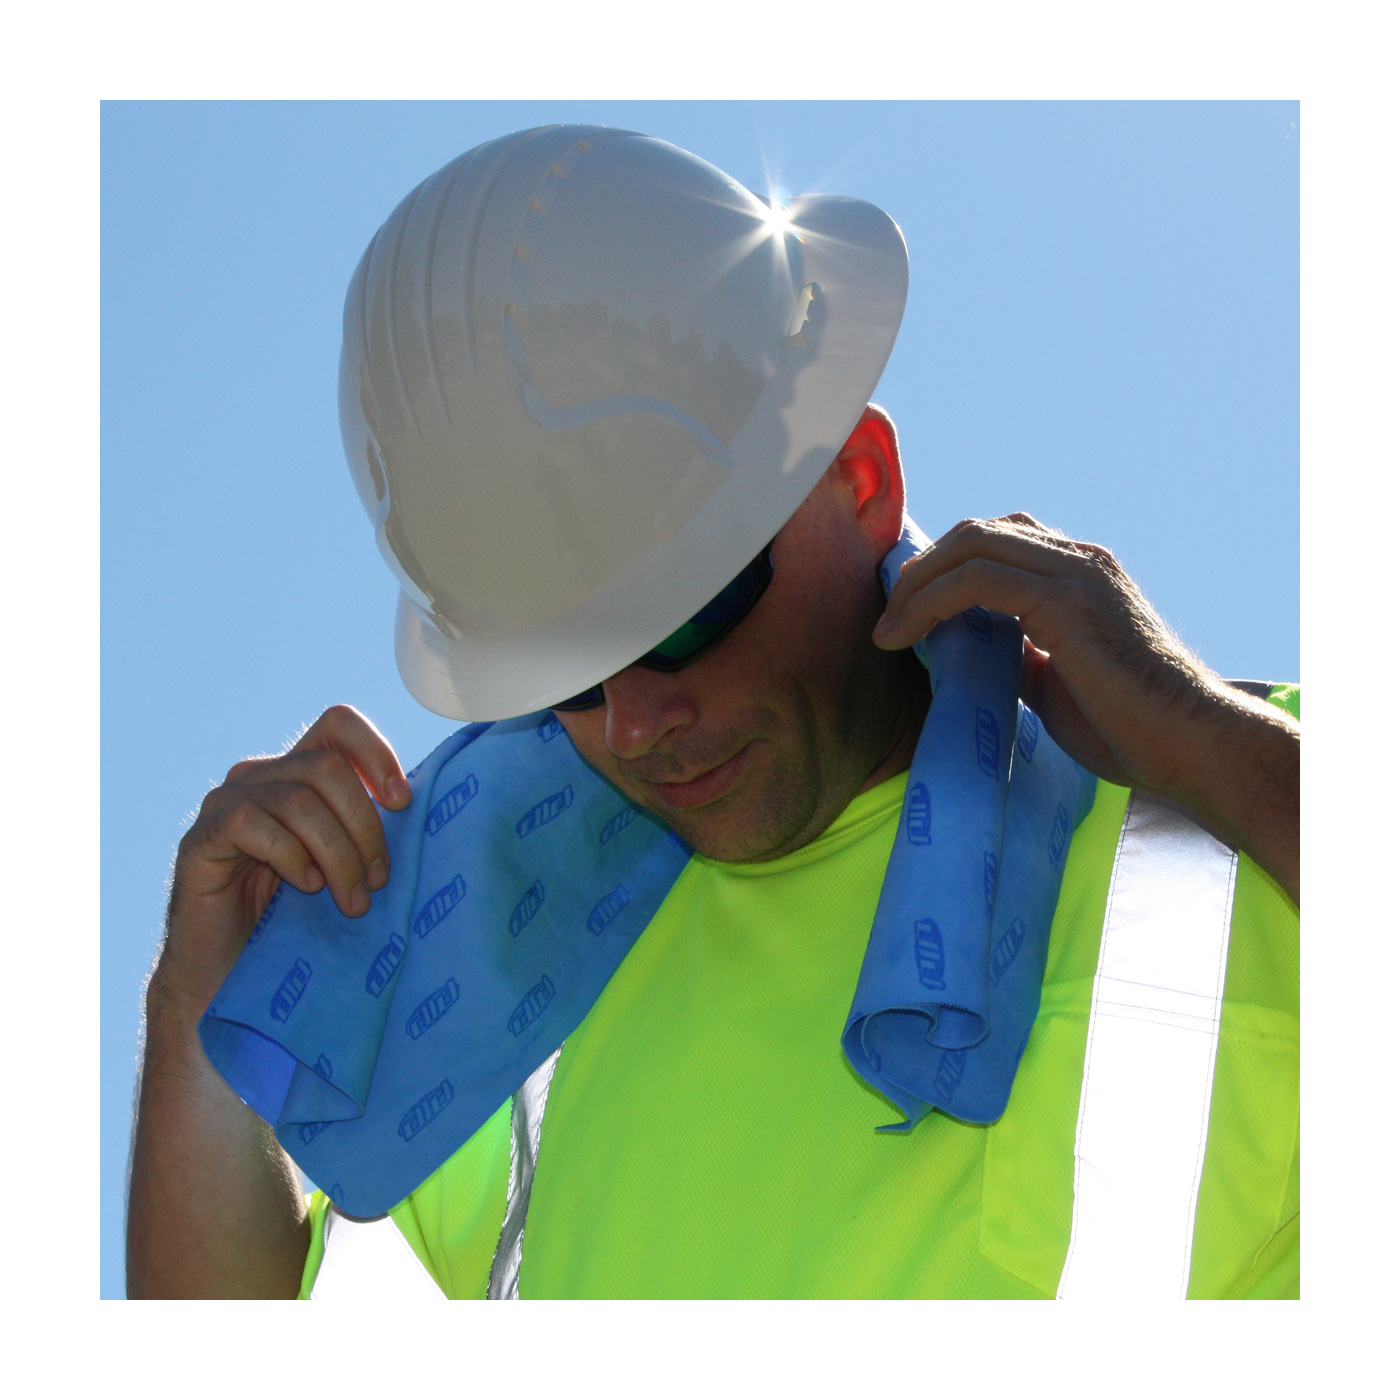 Sweat Towel On Neck: Protective Industrial Products :: Products :: Heat Stress